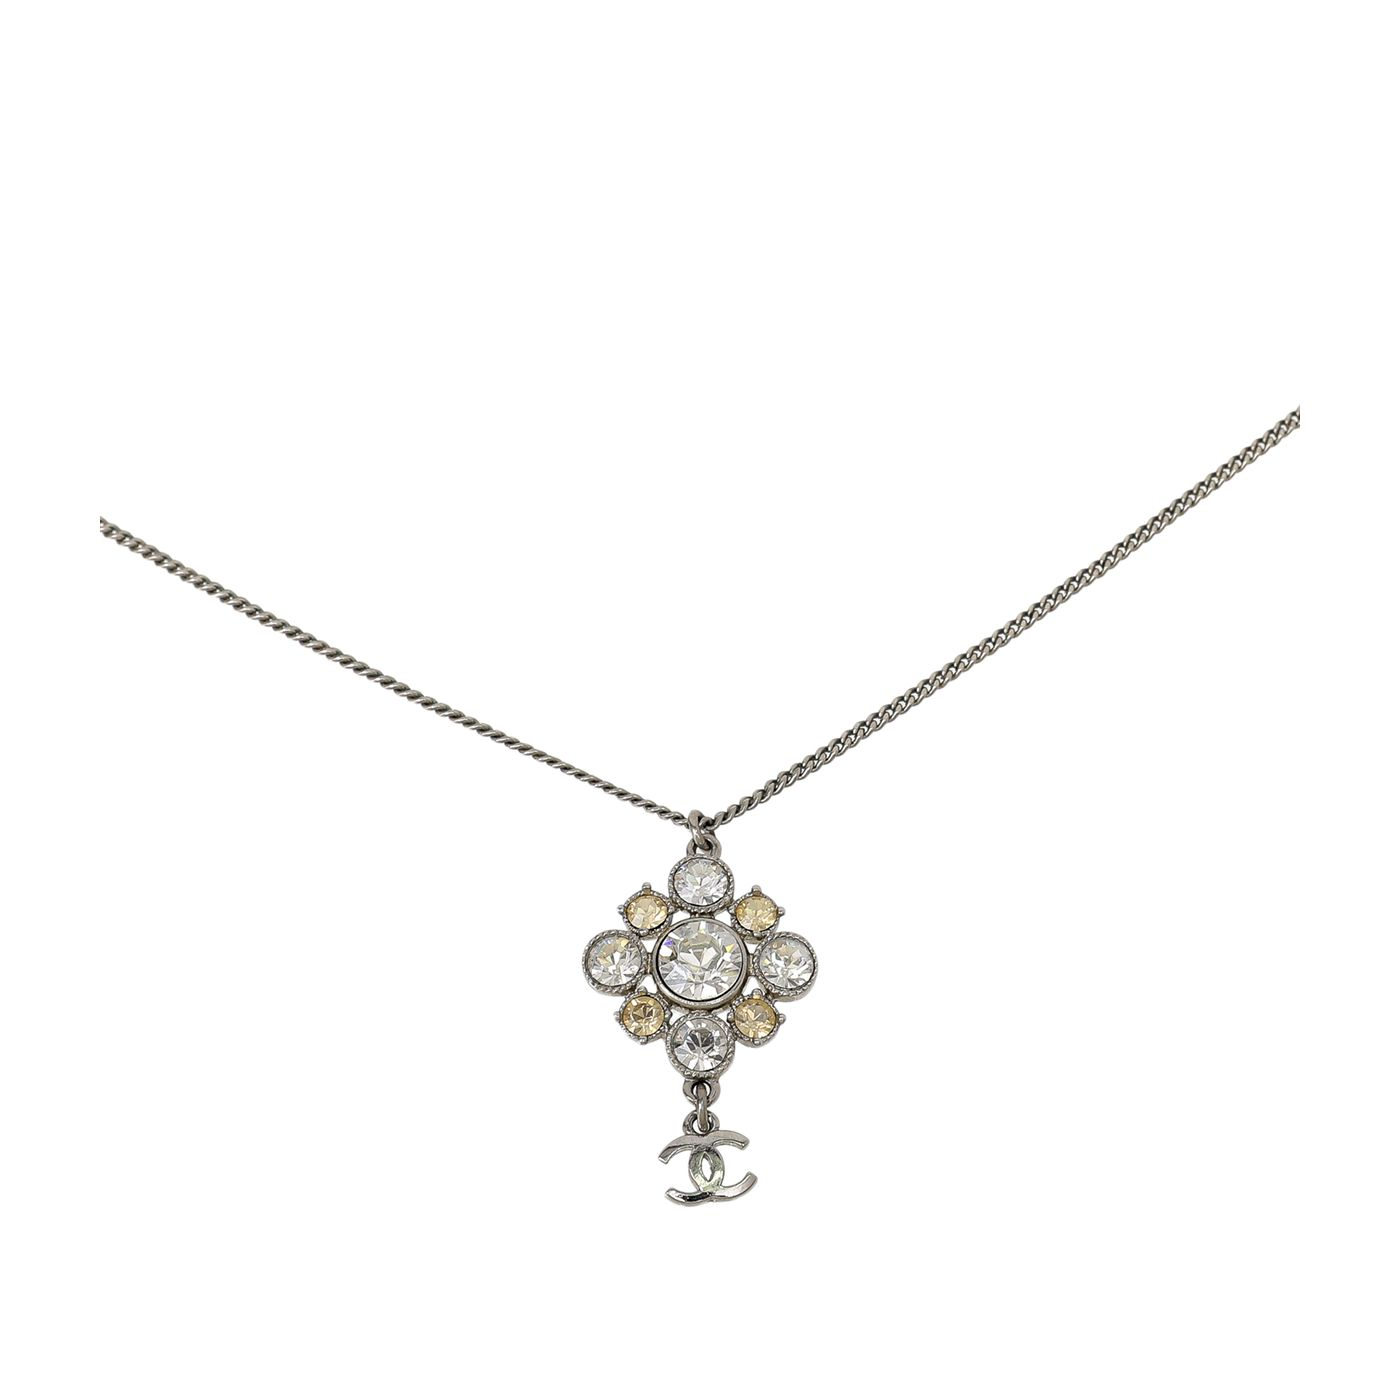 Chanel Silver CC Crystal Pendant Gripoix Chain Necklace